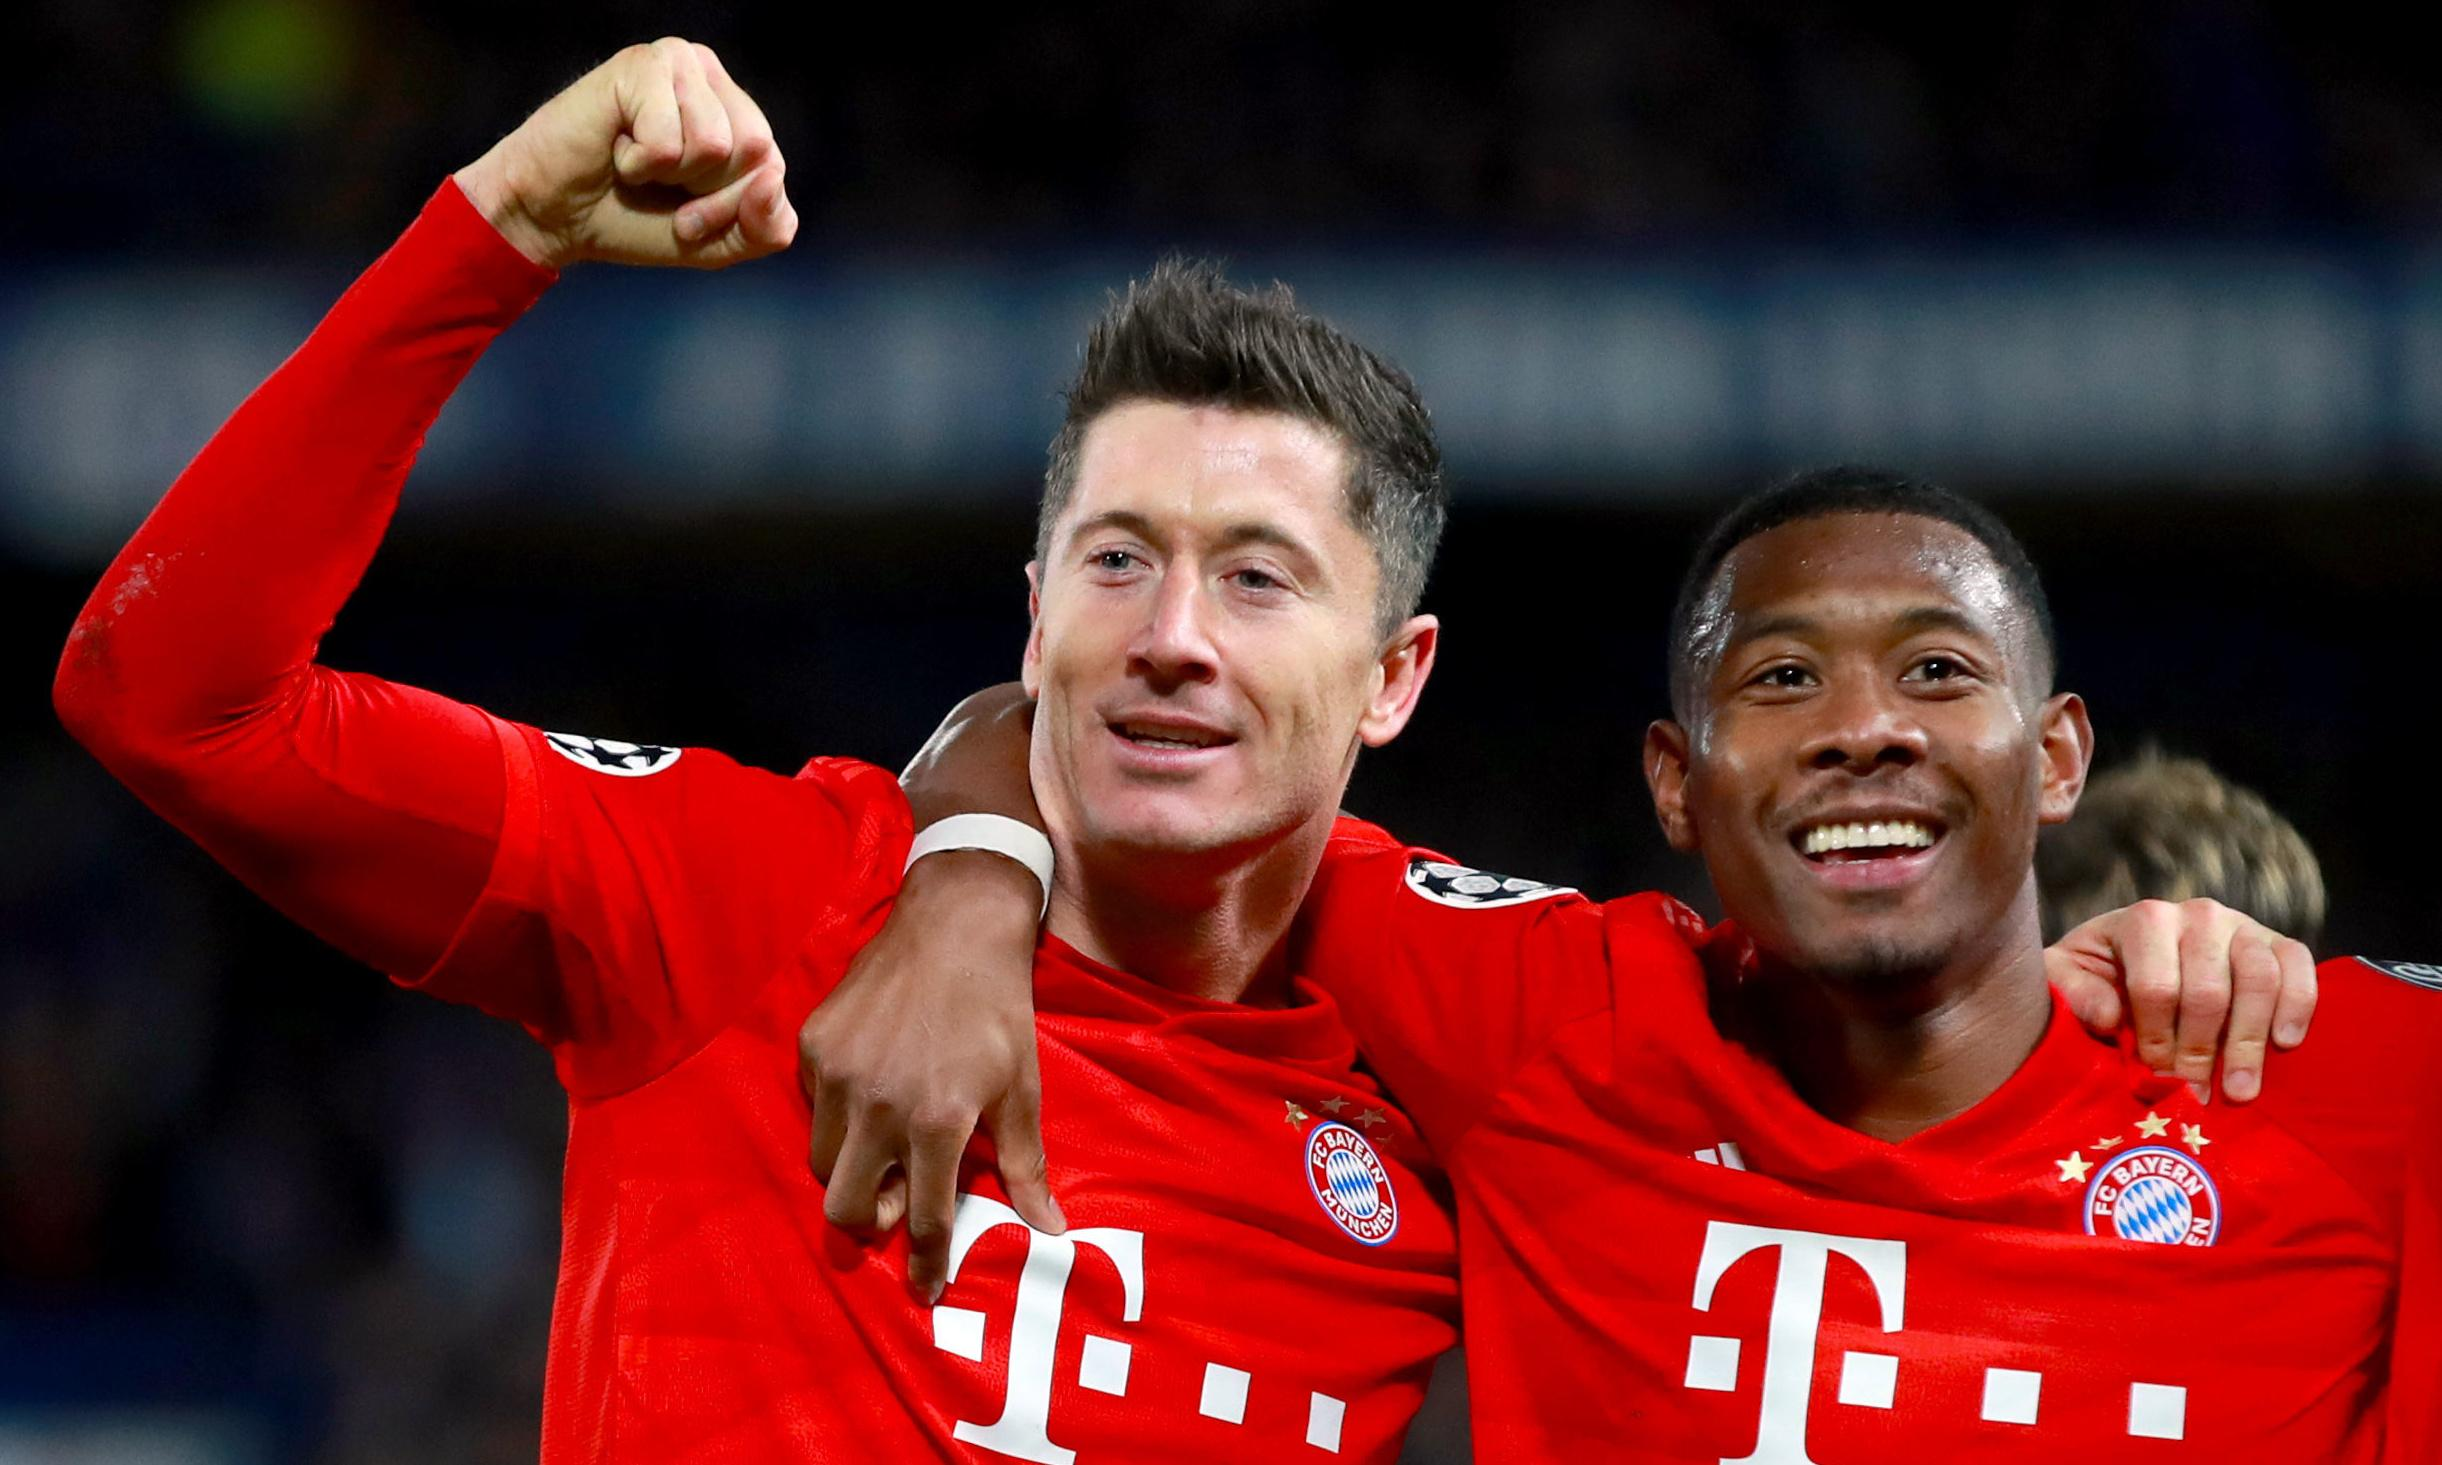 Lewandowski in same class as Messi and Ronaldo, says Bayern's Alaba